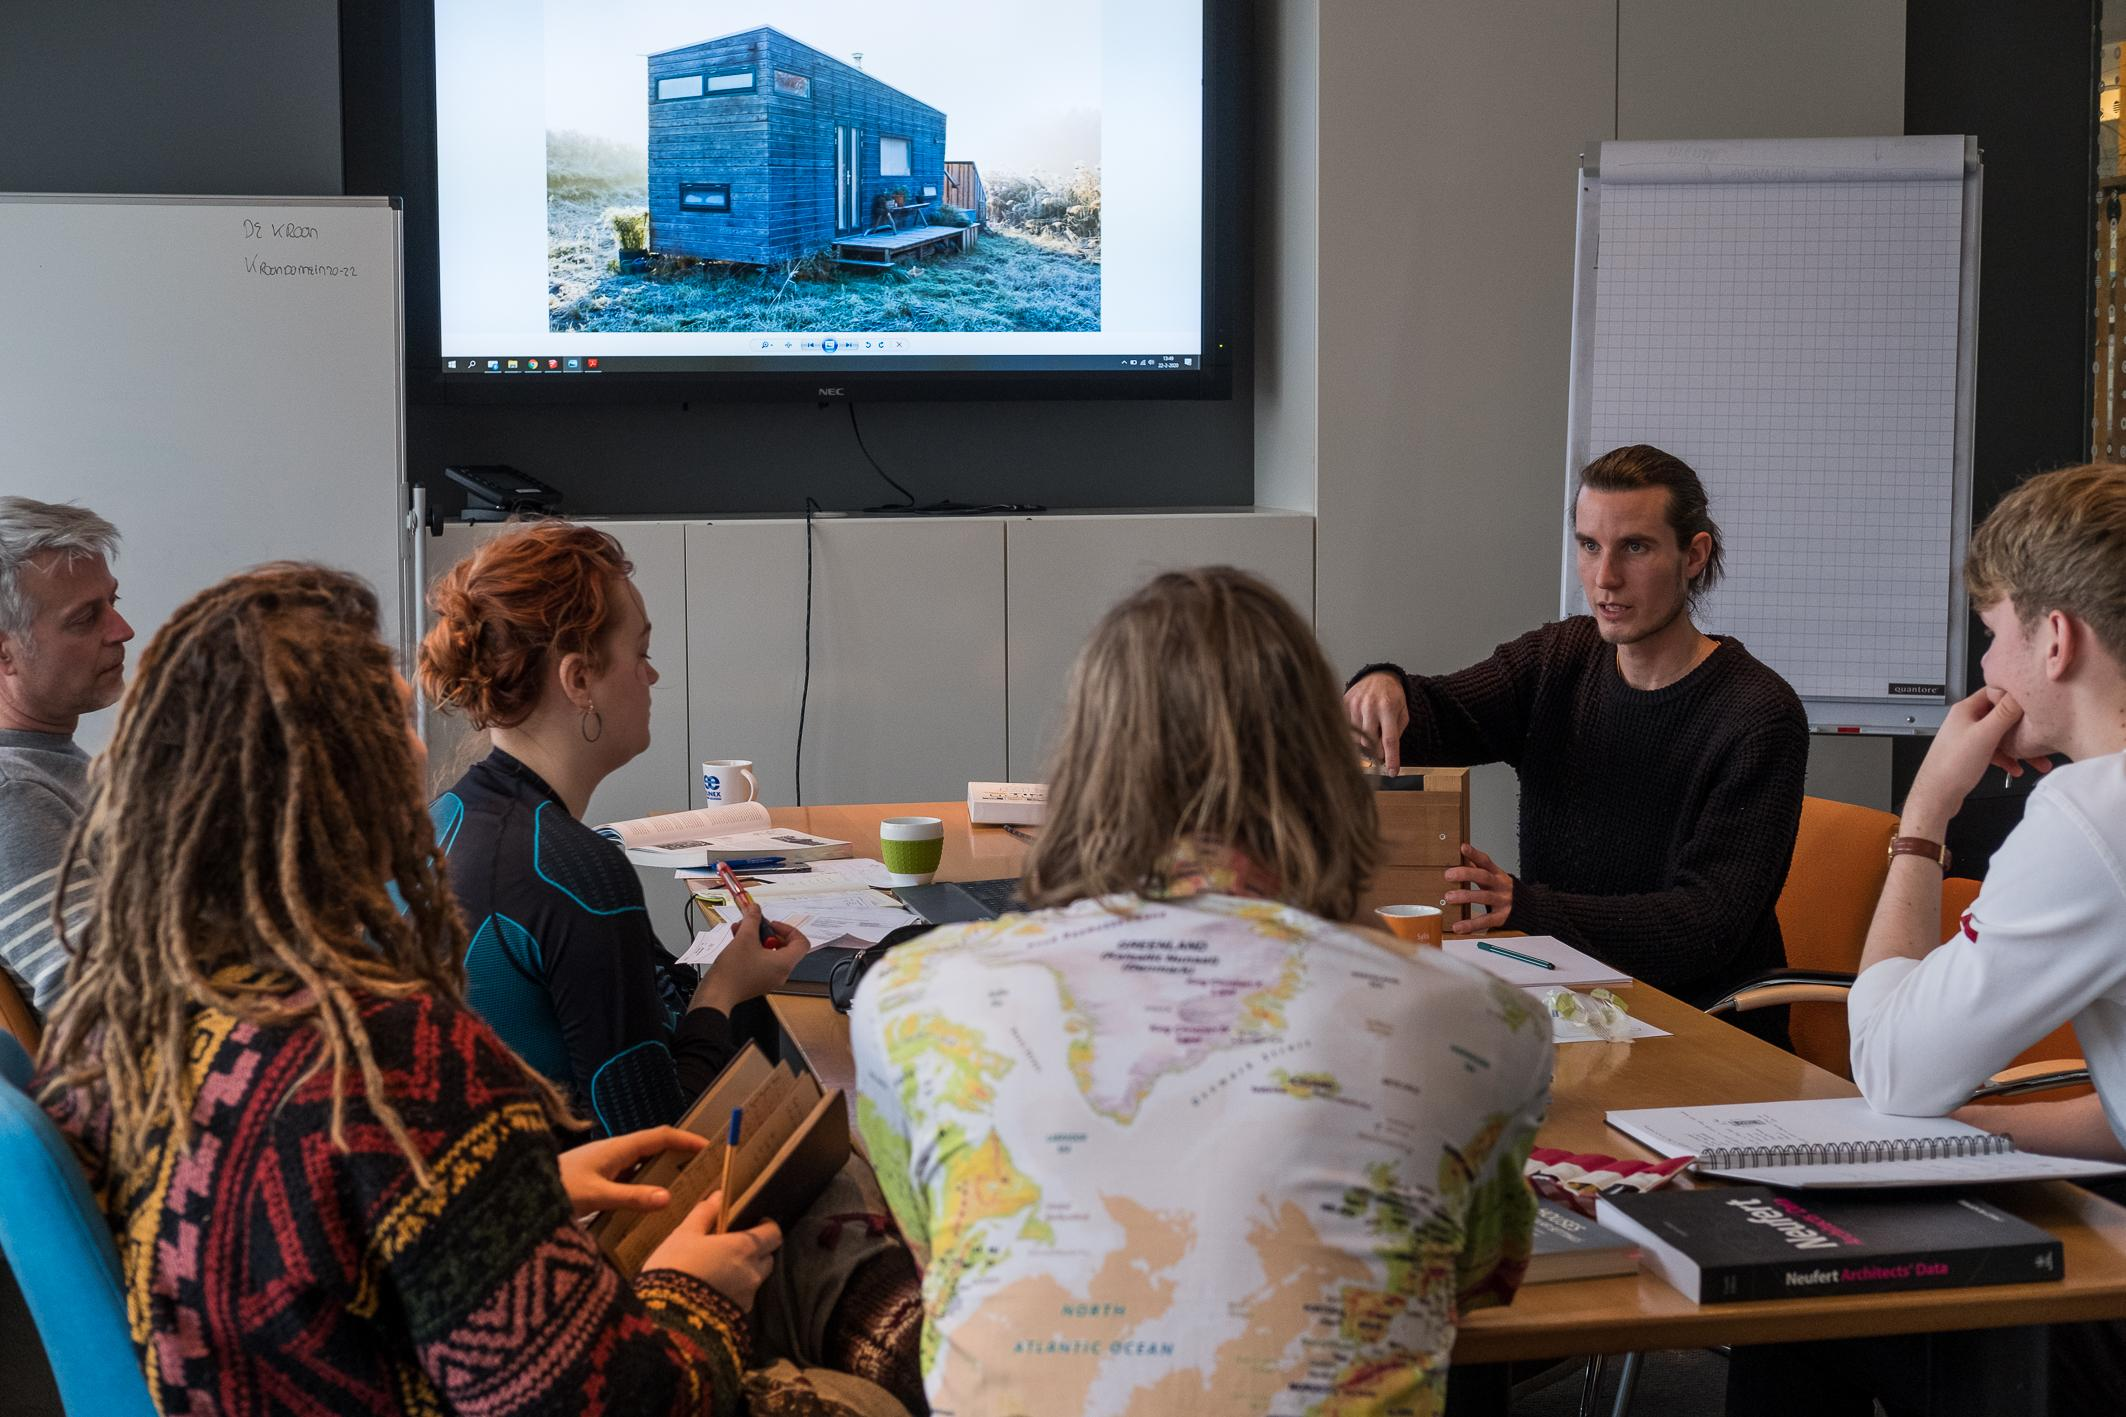 """Jan-Willem van der Made founded the Tiny House Academy where he is teaching students to design their own tiny house and how to live off-grid in The Netherlands. According to Jan-Willem """"minimalist, ecological and economical values are intertwined in the tiny house lifestyle. If you are not fully committed, you can't make it."""""""